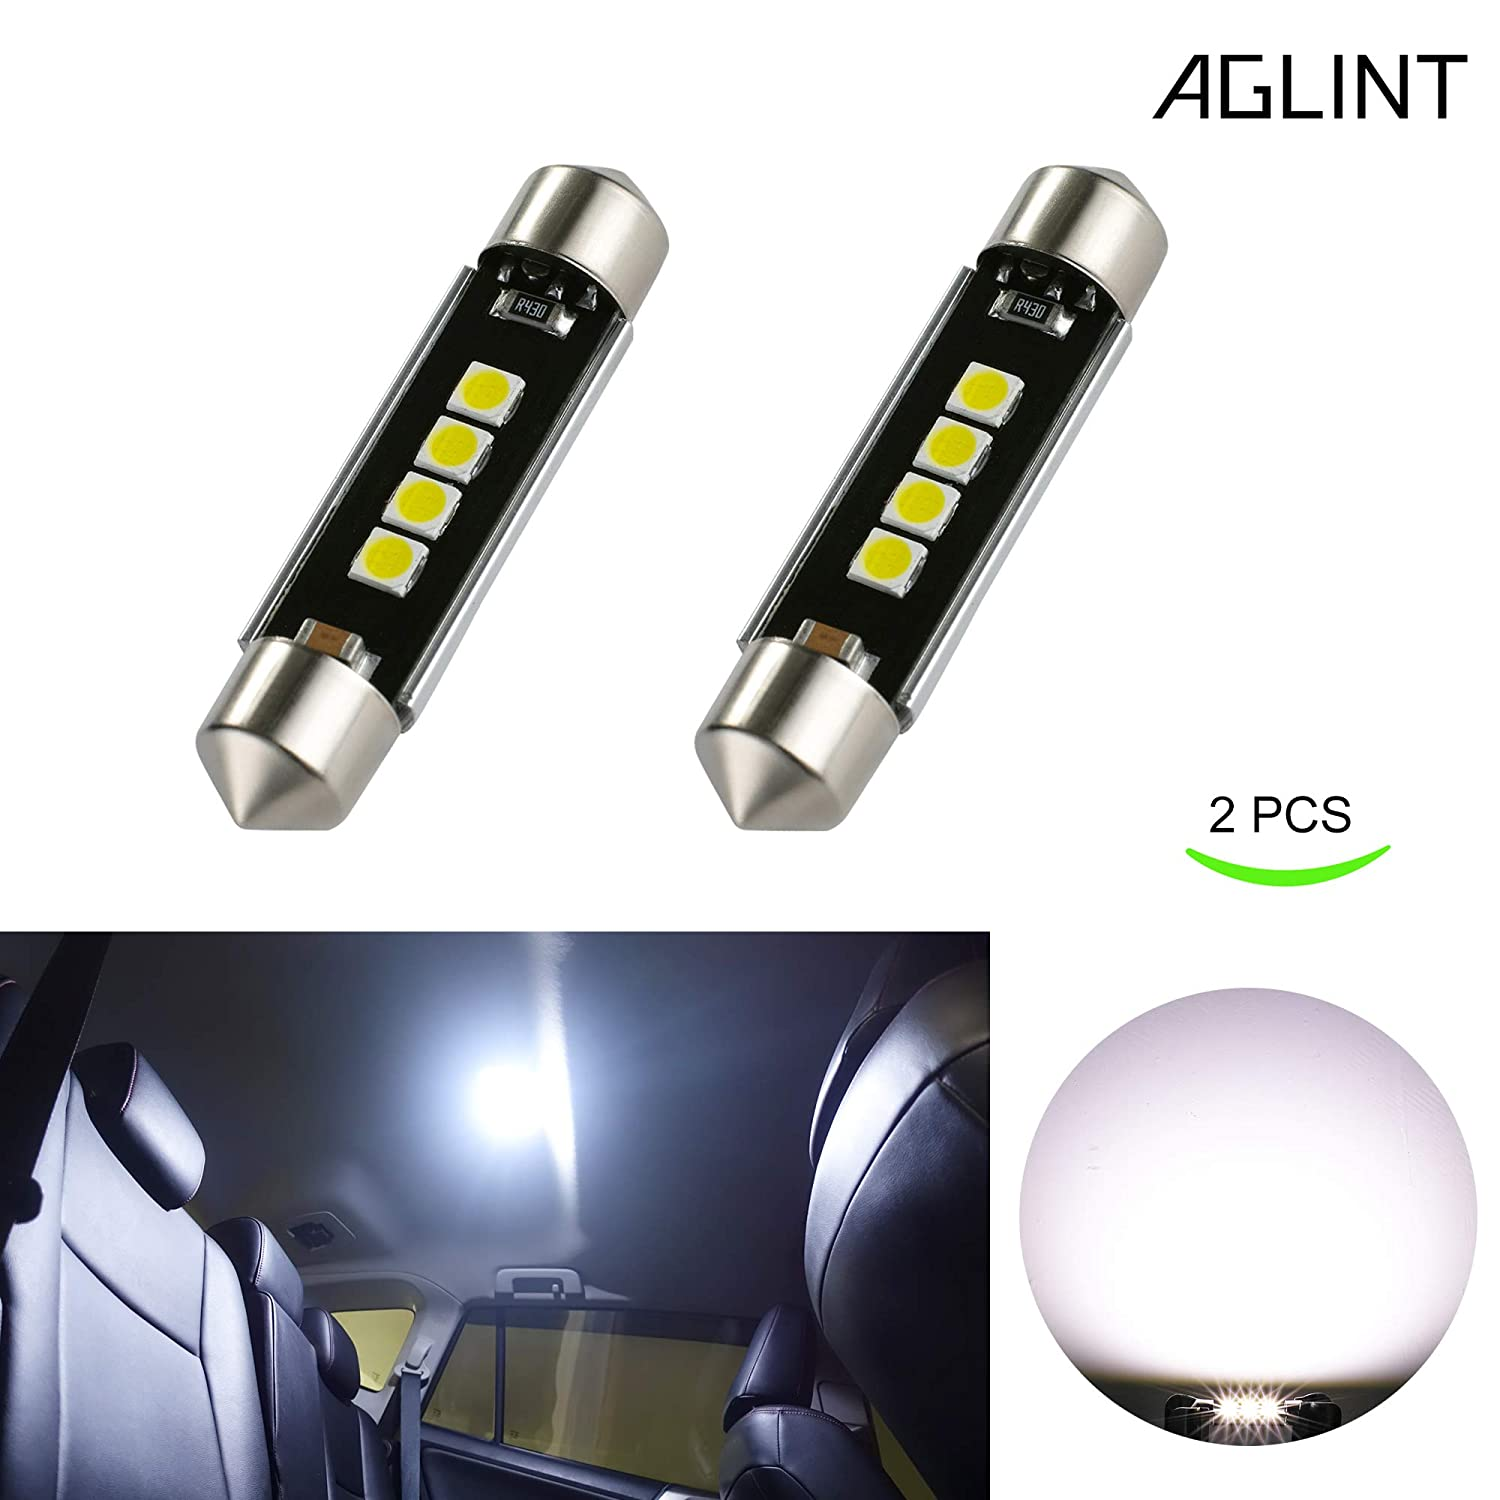 AGLINT 36mm LED Bulb CANBUS Error Free Extremely Bright 3030 Chipsets 3SMD 6000K Xenon White 6411 6418 C5W Festoon LED Bulbs Replacement for Map Dome License Plate Lights Lamps (36mm) AGLINTLED